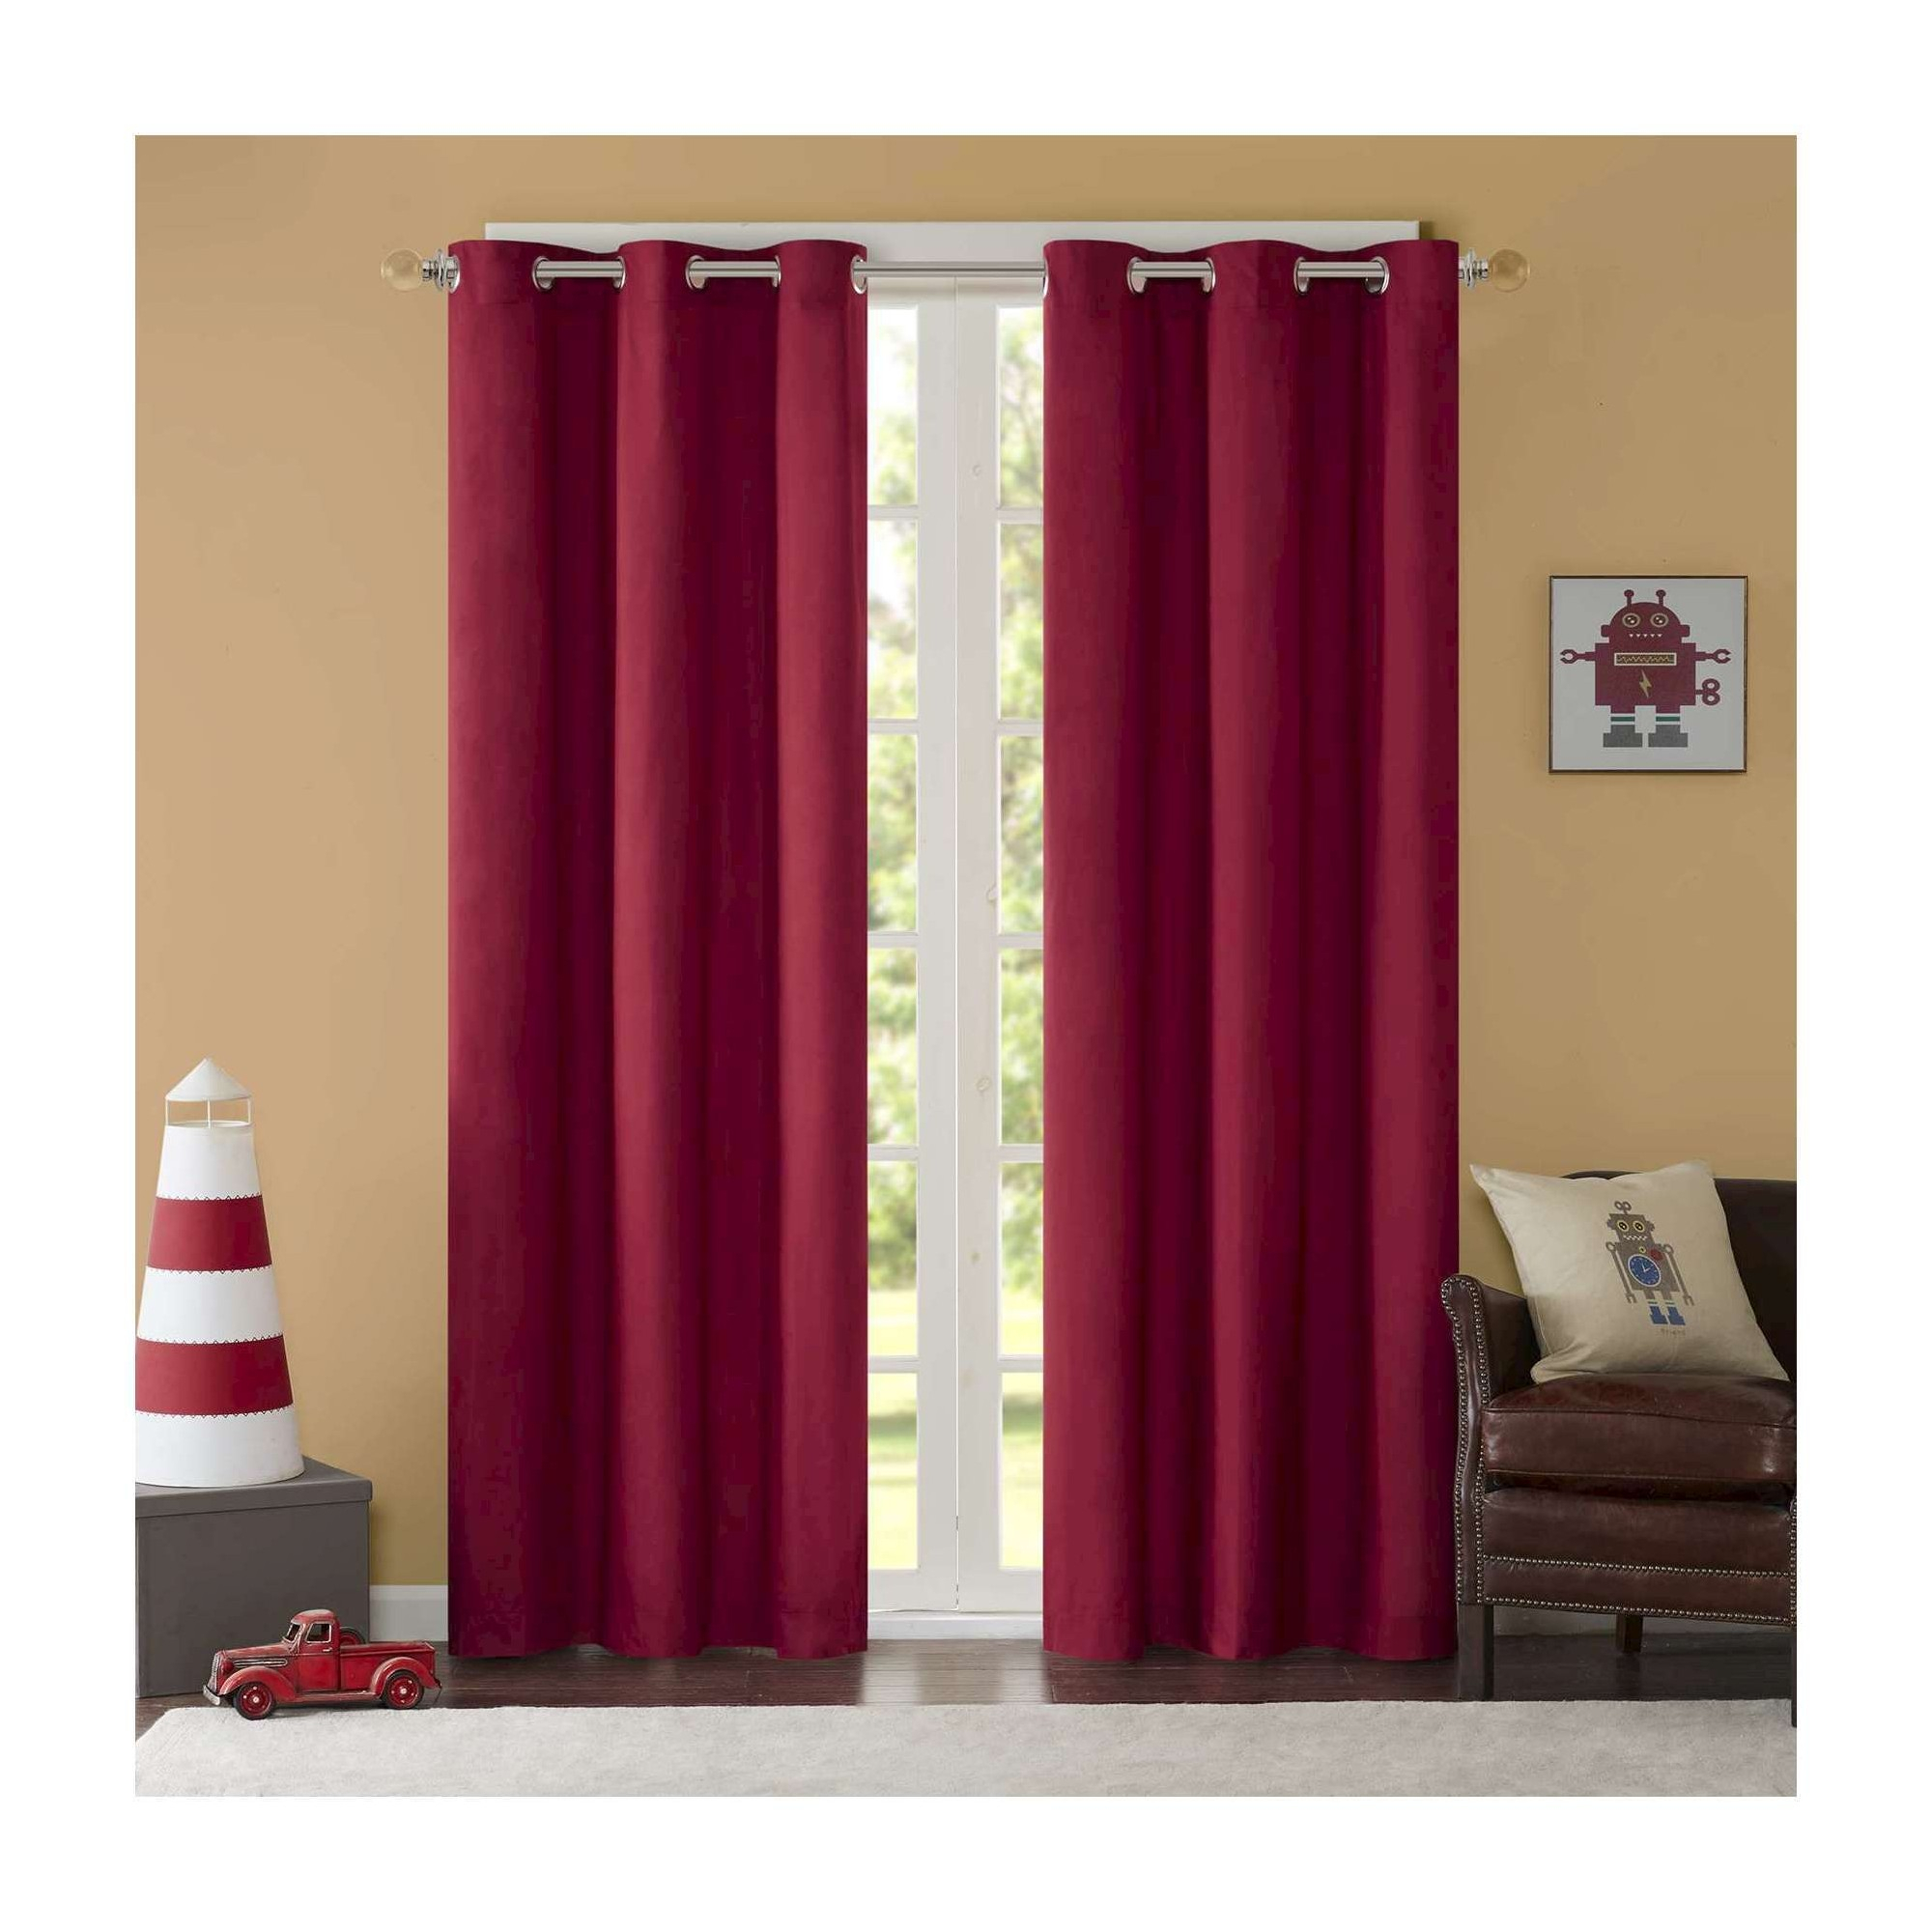 Edson Solid Grommet Top Curtain Panel Pair Red (42X63 Regarding Solid Grommet Top Curtain Panel Pairs (View 10 of 30)